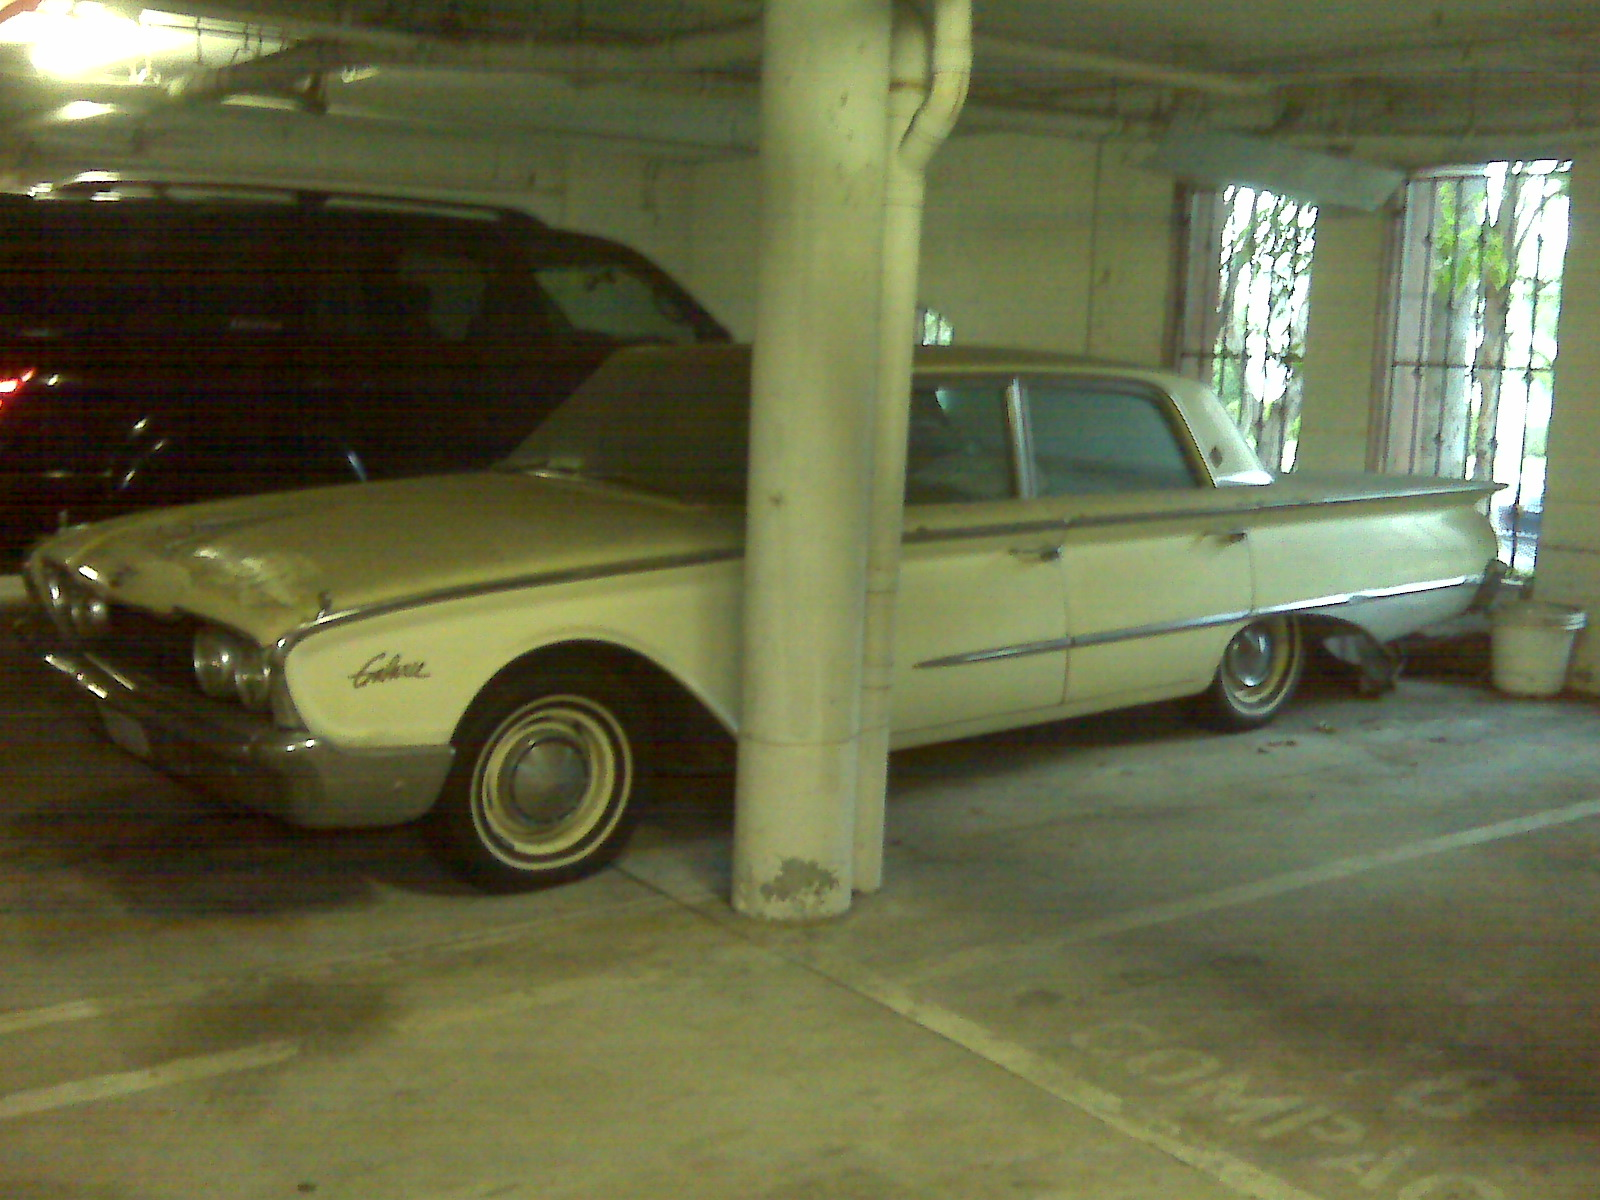 ... 1960 Ford Galaxie - LOS ANGELES 90045 - 11 ...